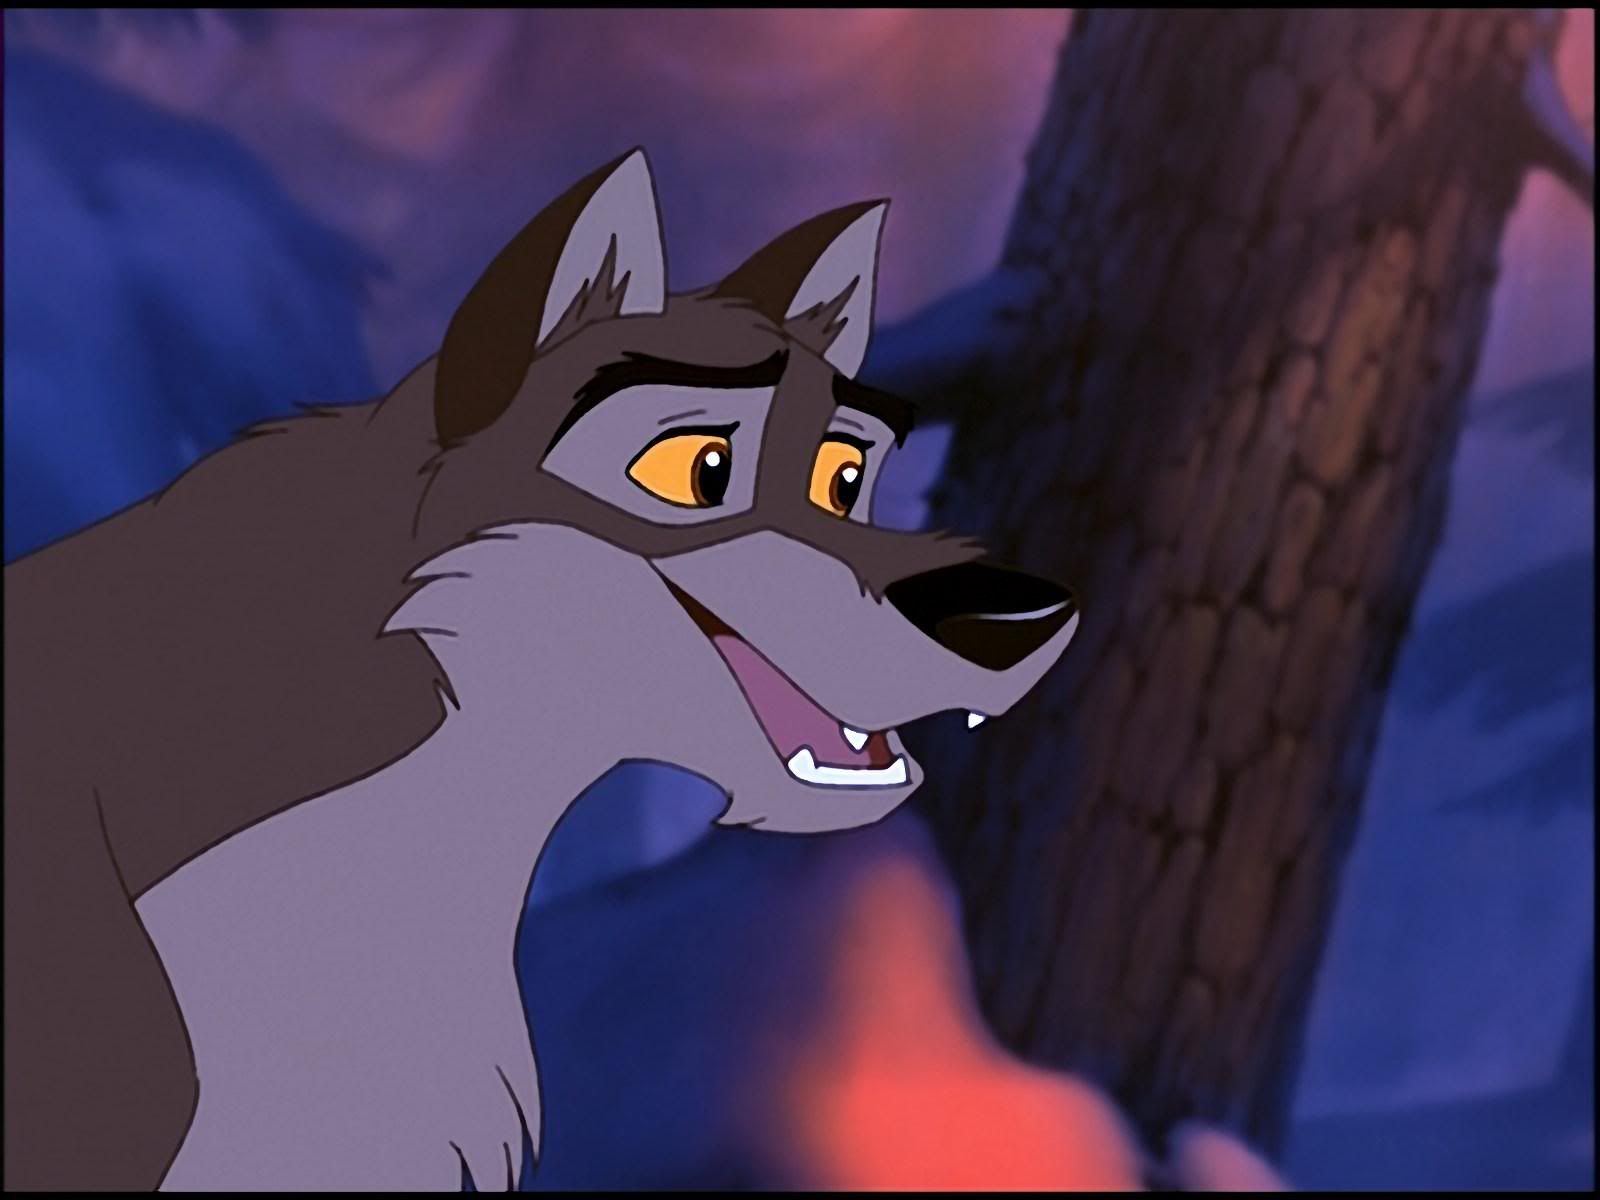 Pin By Robin Oswald On Disneys Pixar Balto Film Disney And More